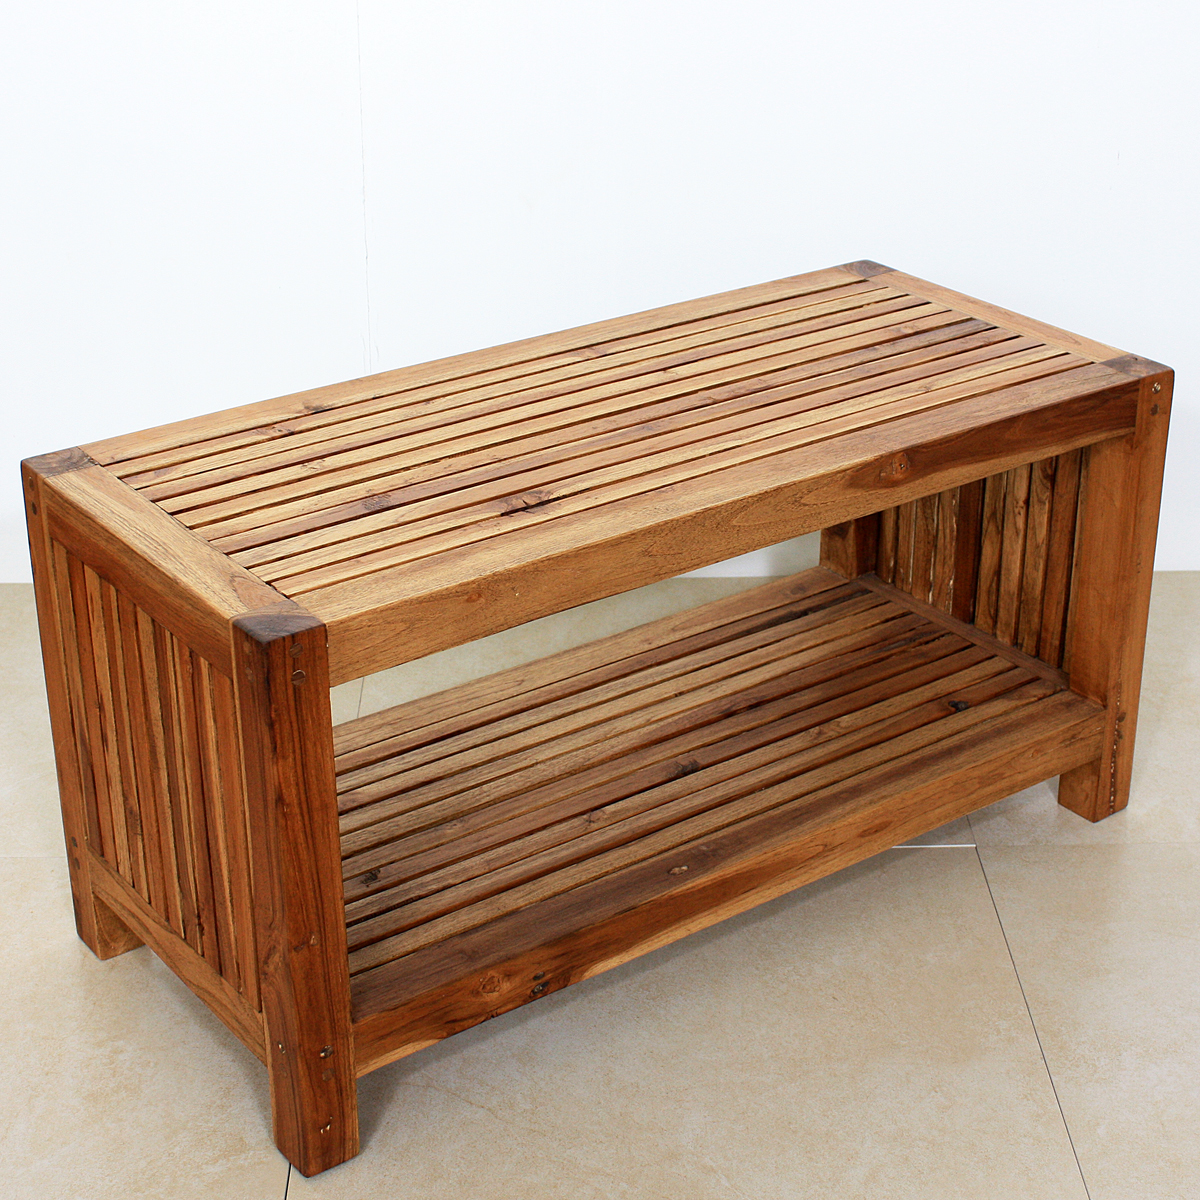 Teak Slat Coffee Table with Shelf